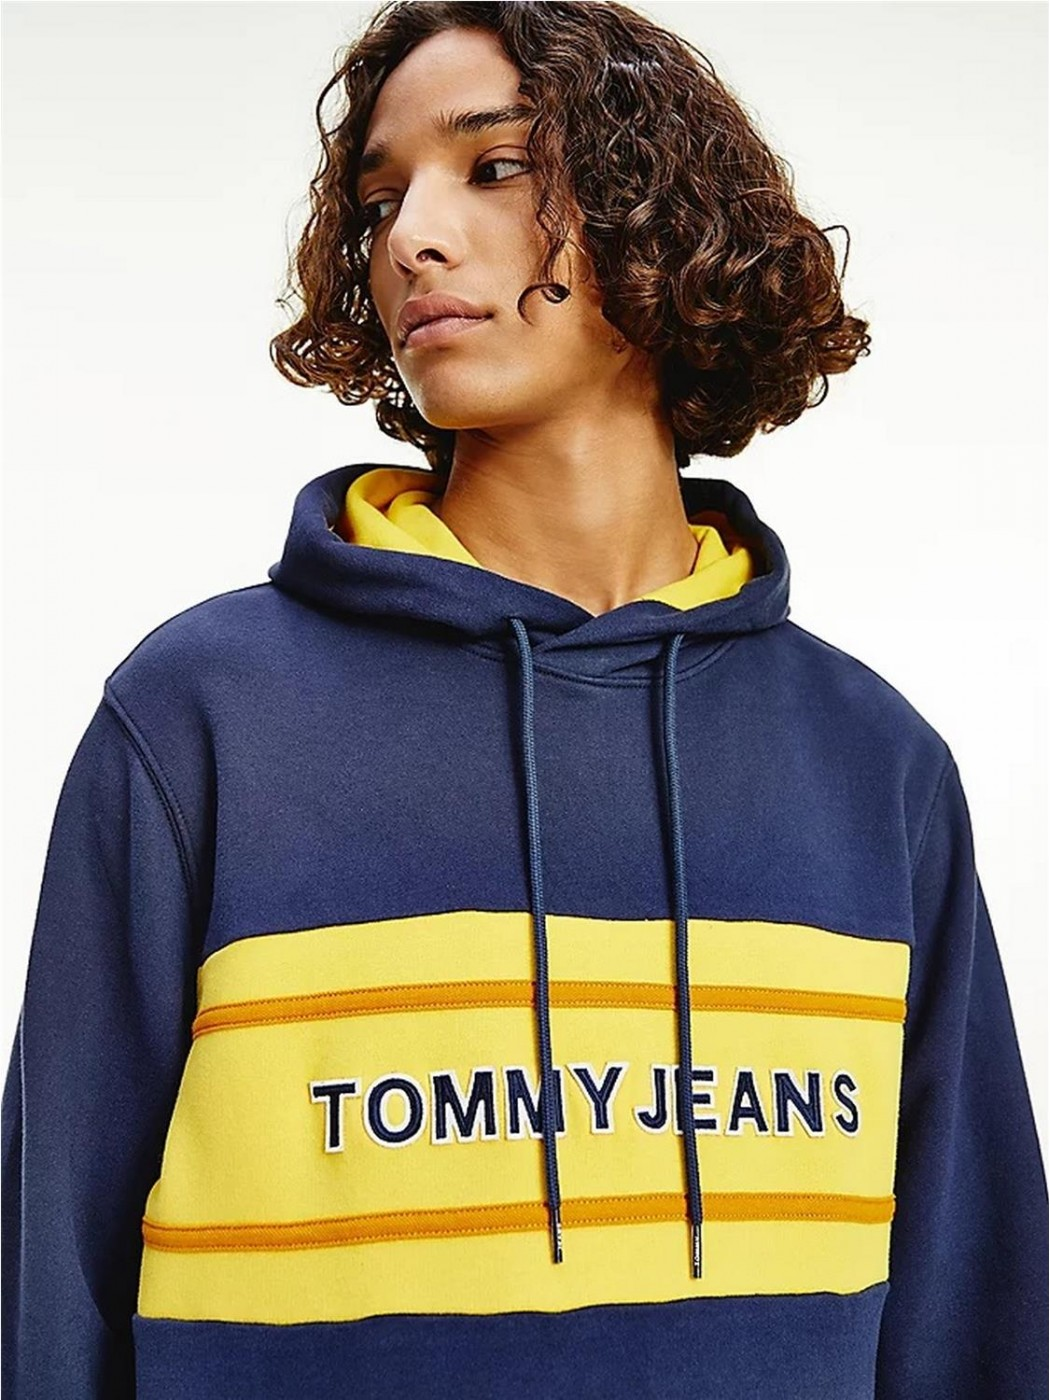 SUDADERA TOMMY JEANS PIECED...